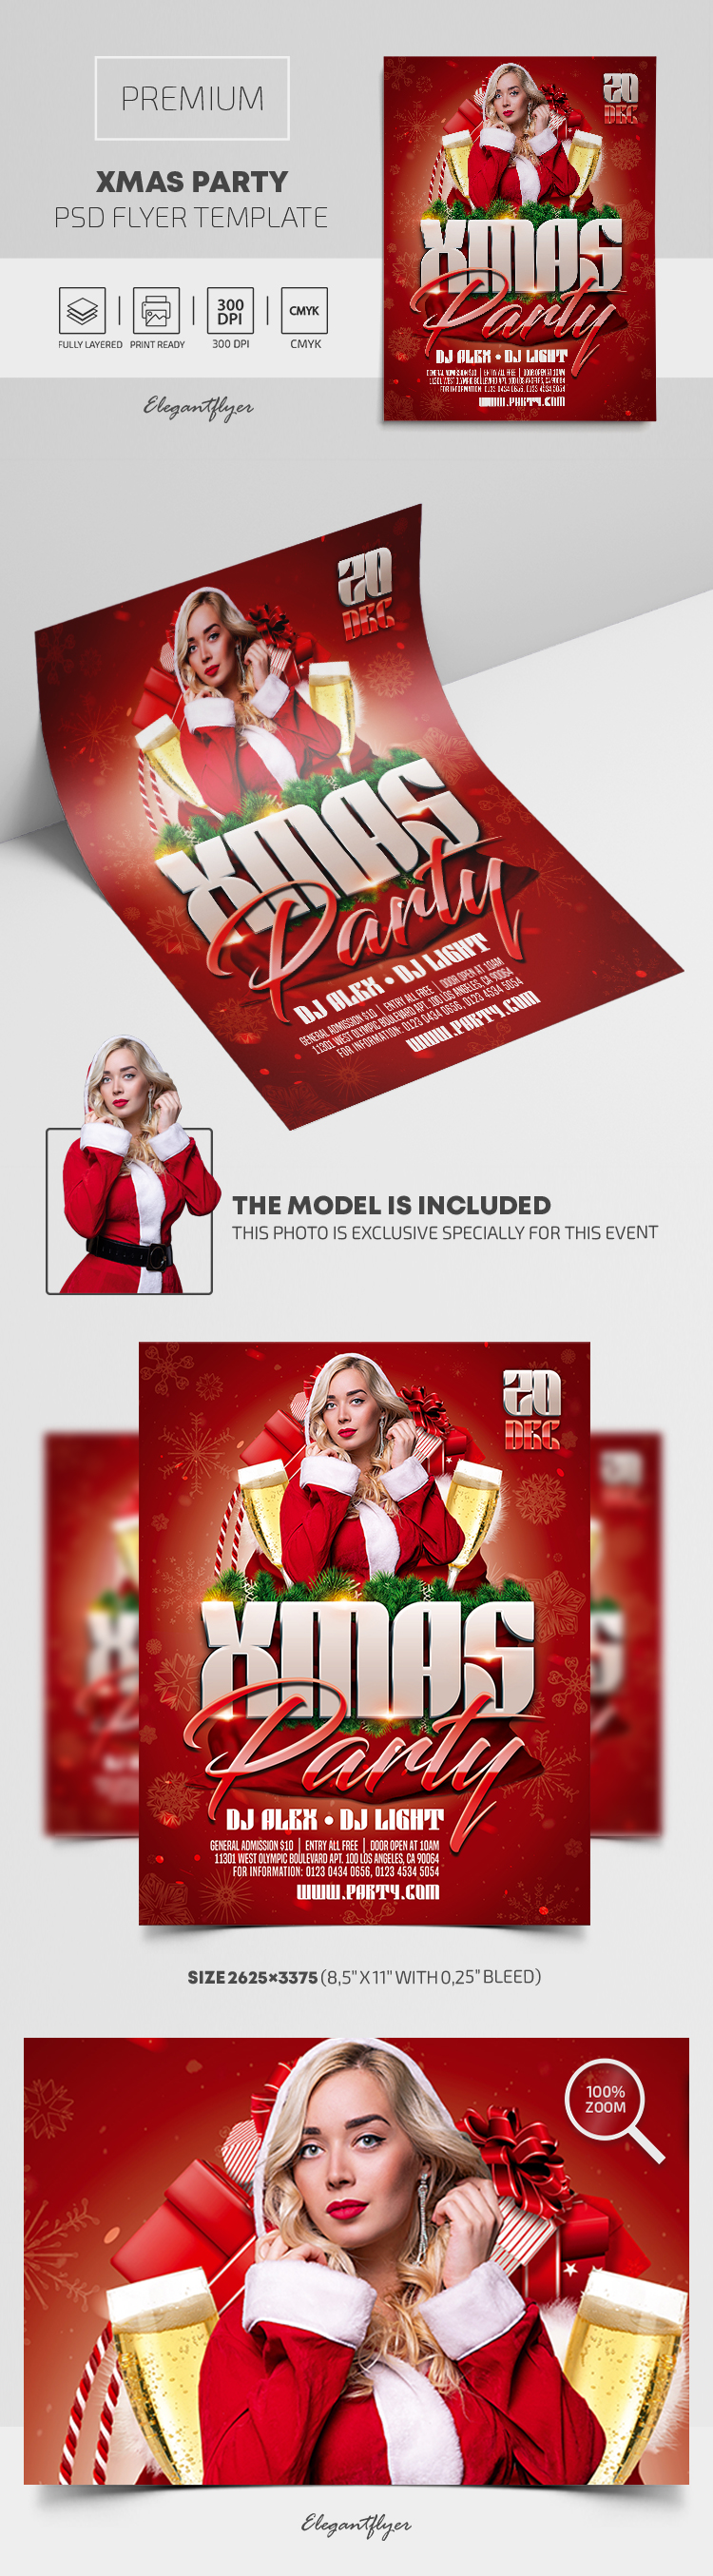 Xmas Party – Premium PSD Flyer Template